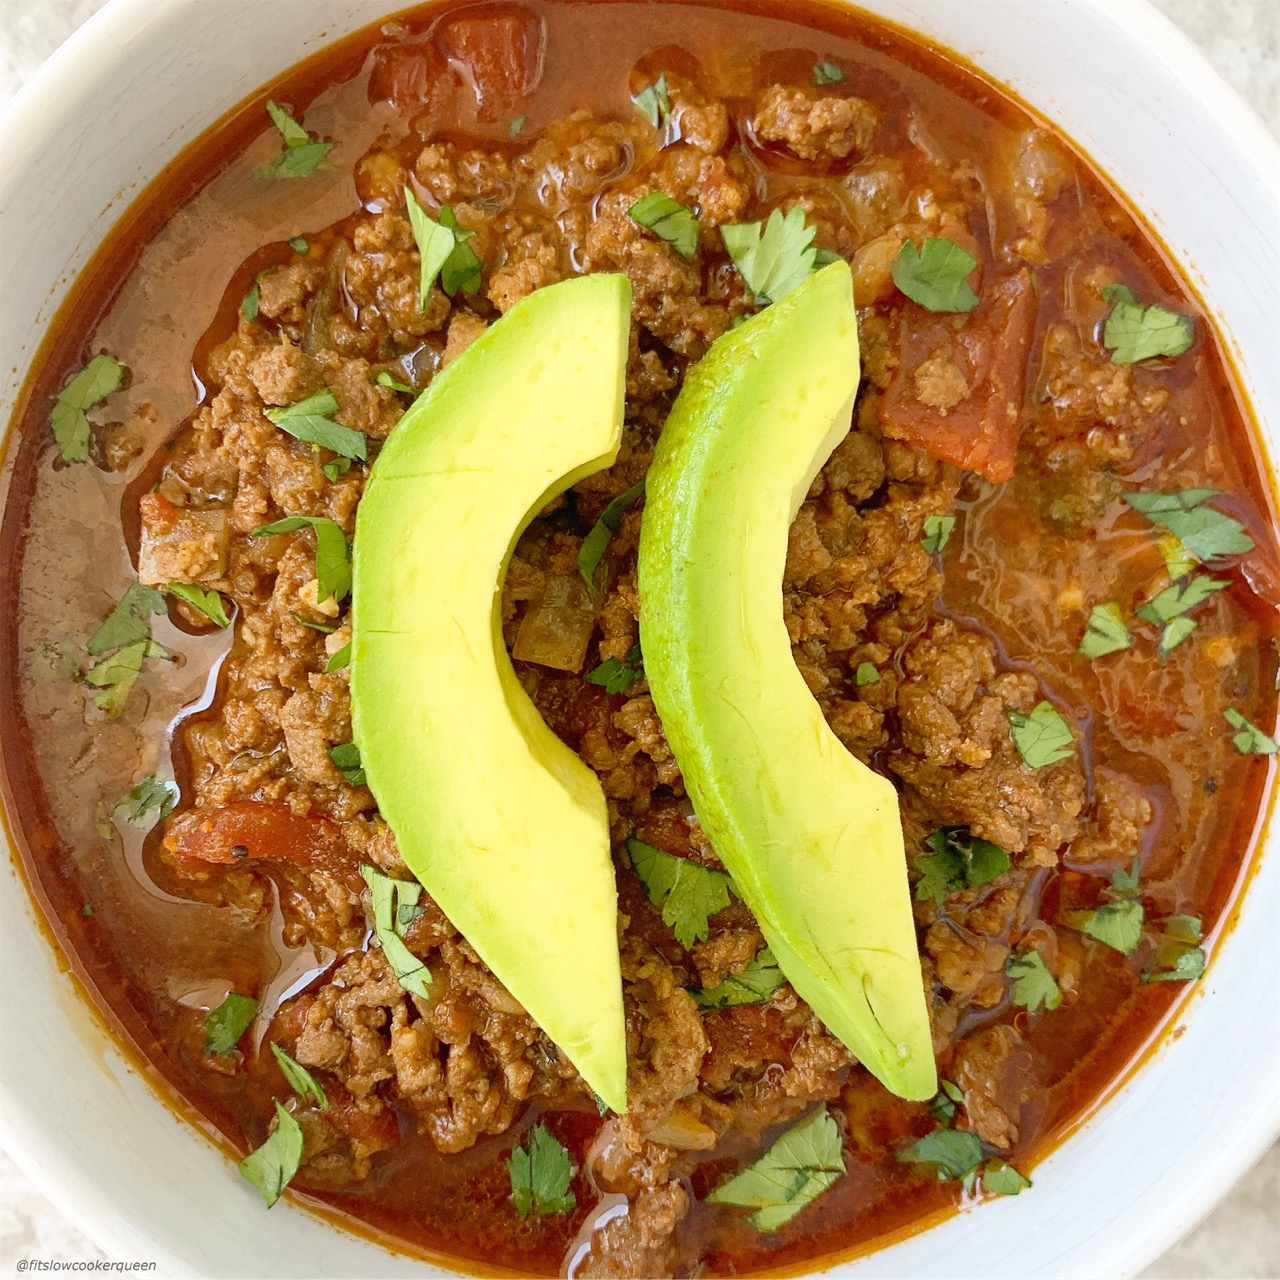 No beans necessary! Omit the beans and you have a delicious low-carb, keto chili. Make this paleo/whole30 chili recipe in your slow cooker or Instant Pot.